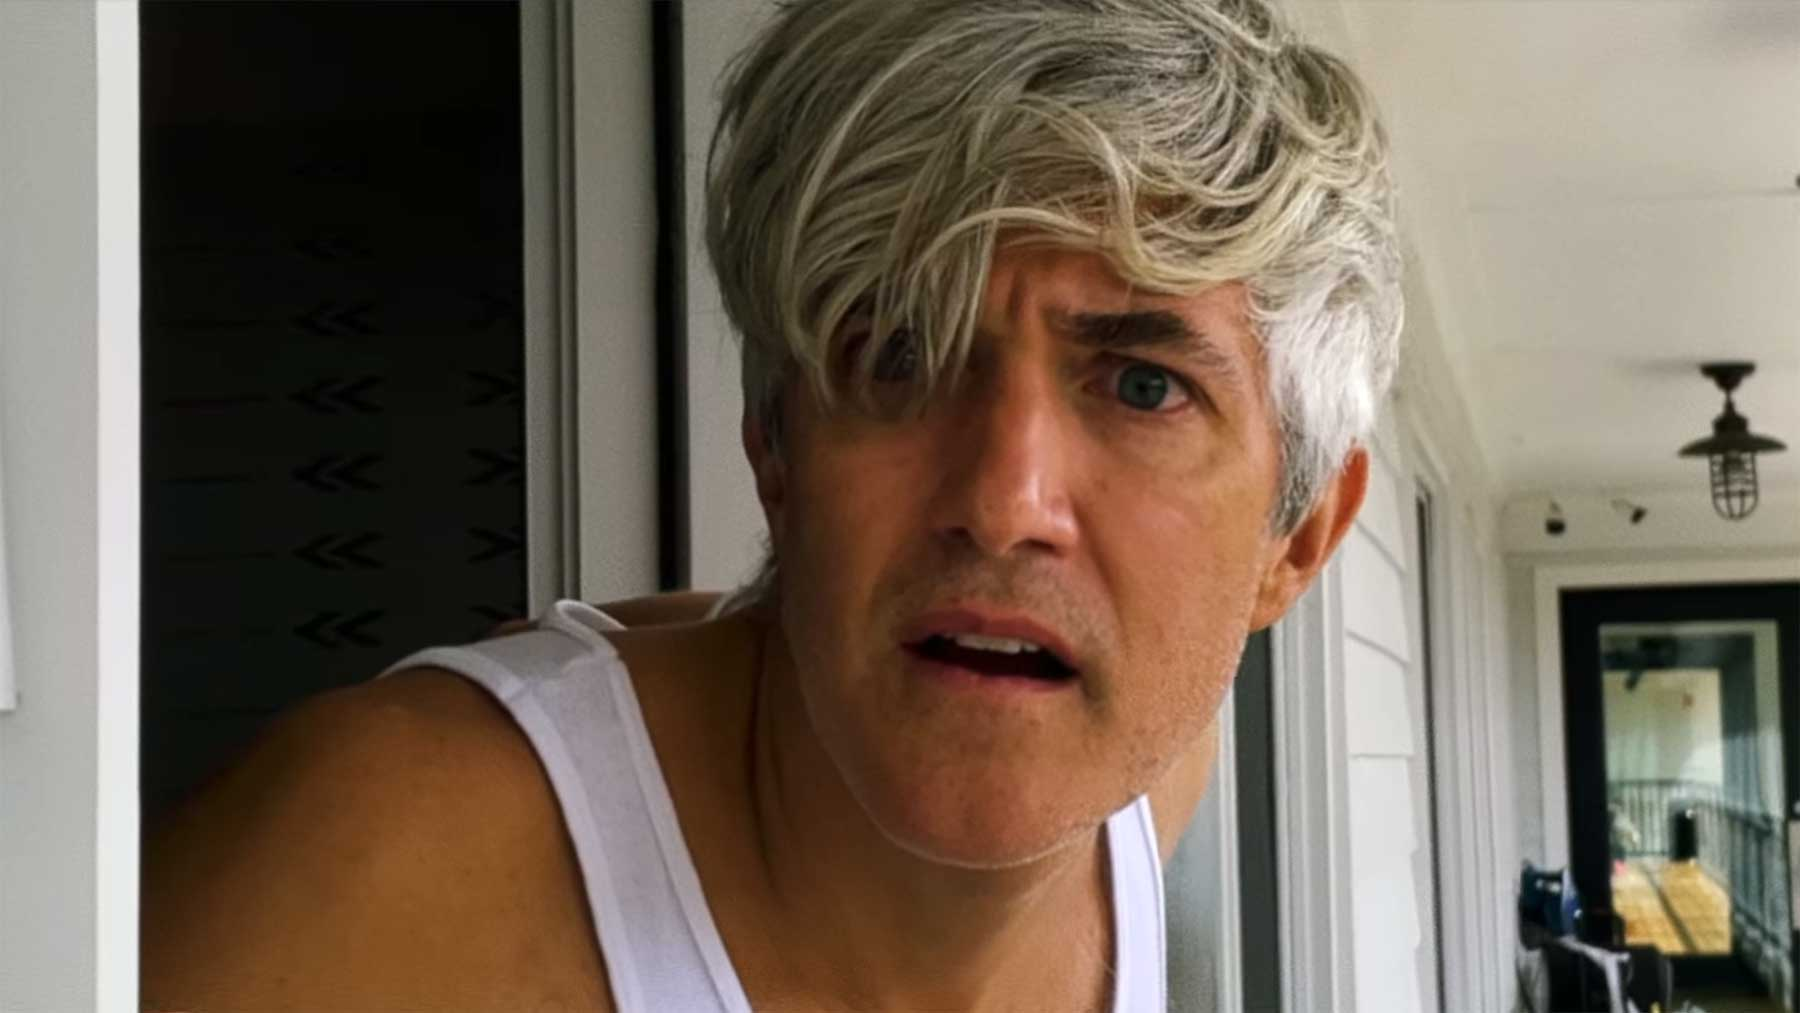 """Musikvideo: We Are Scientists - """"You've Lost Your Shit"""" We-Are-Scientists-Youve-lost-your-shit-musikvideo"""